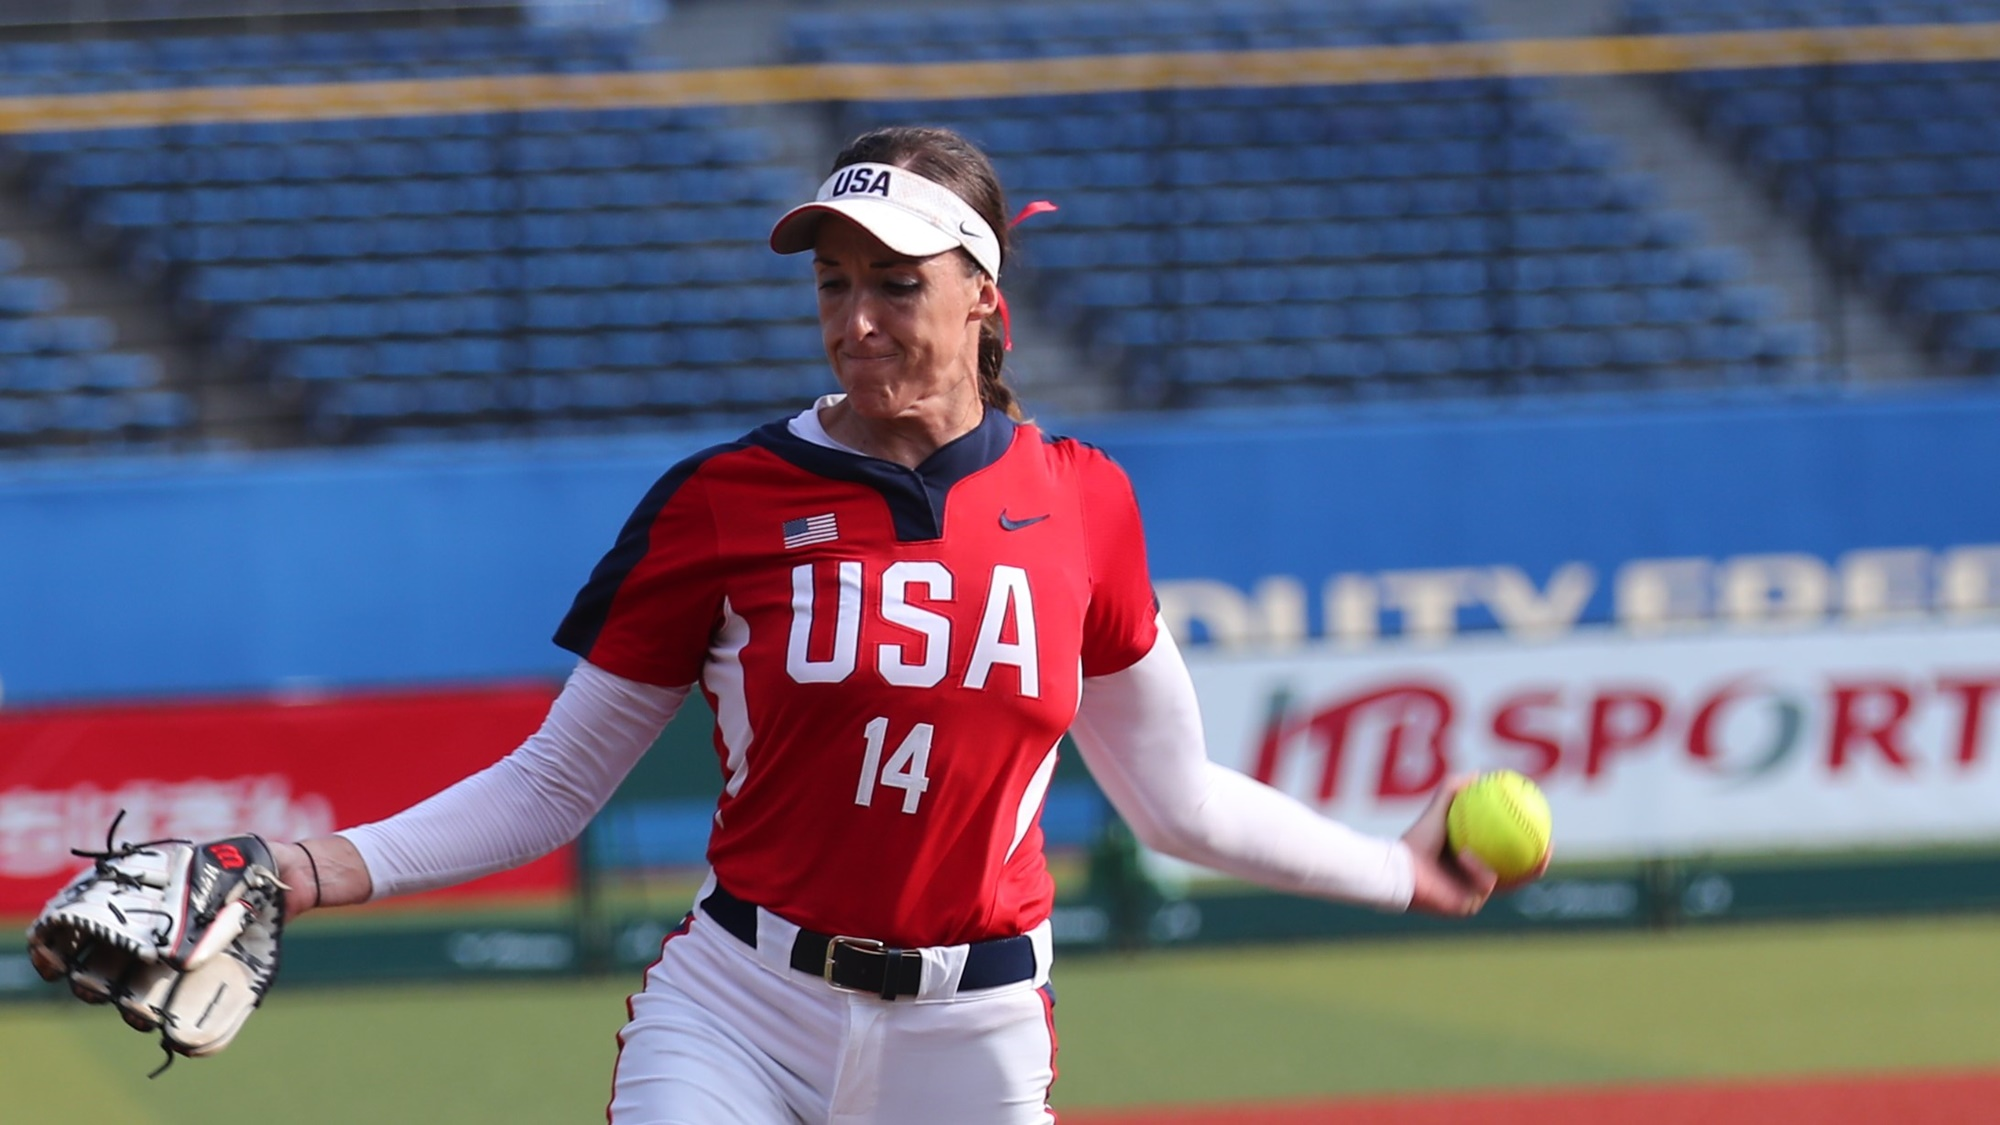 Monica Abbott starred: 18 strike outs in 7 innings